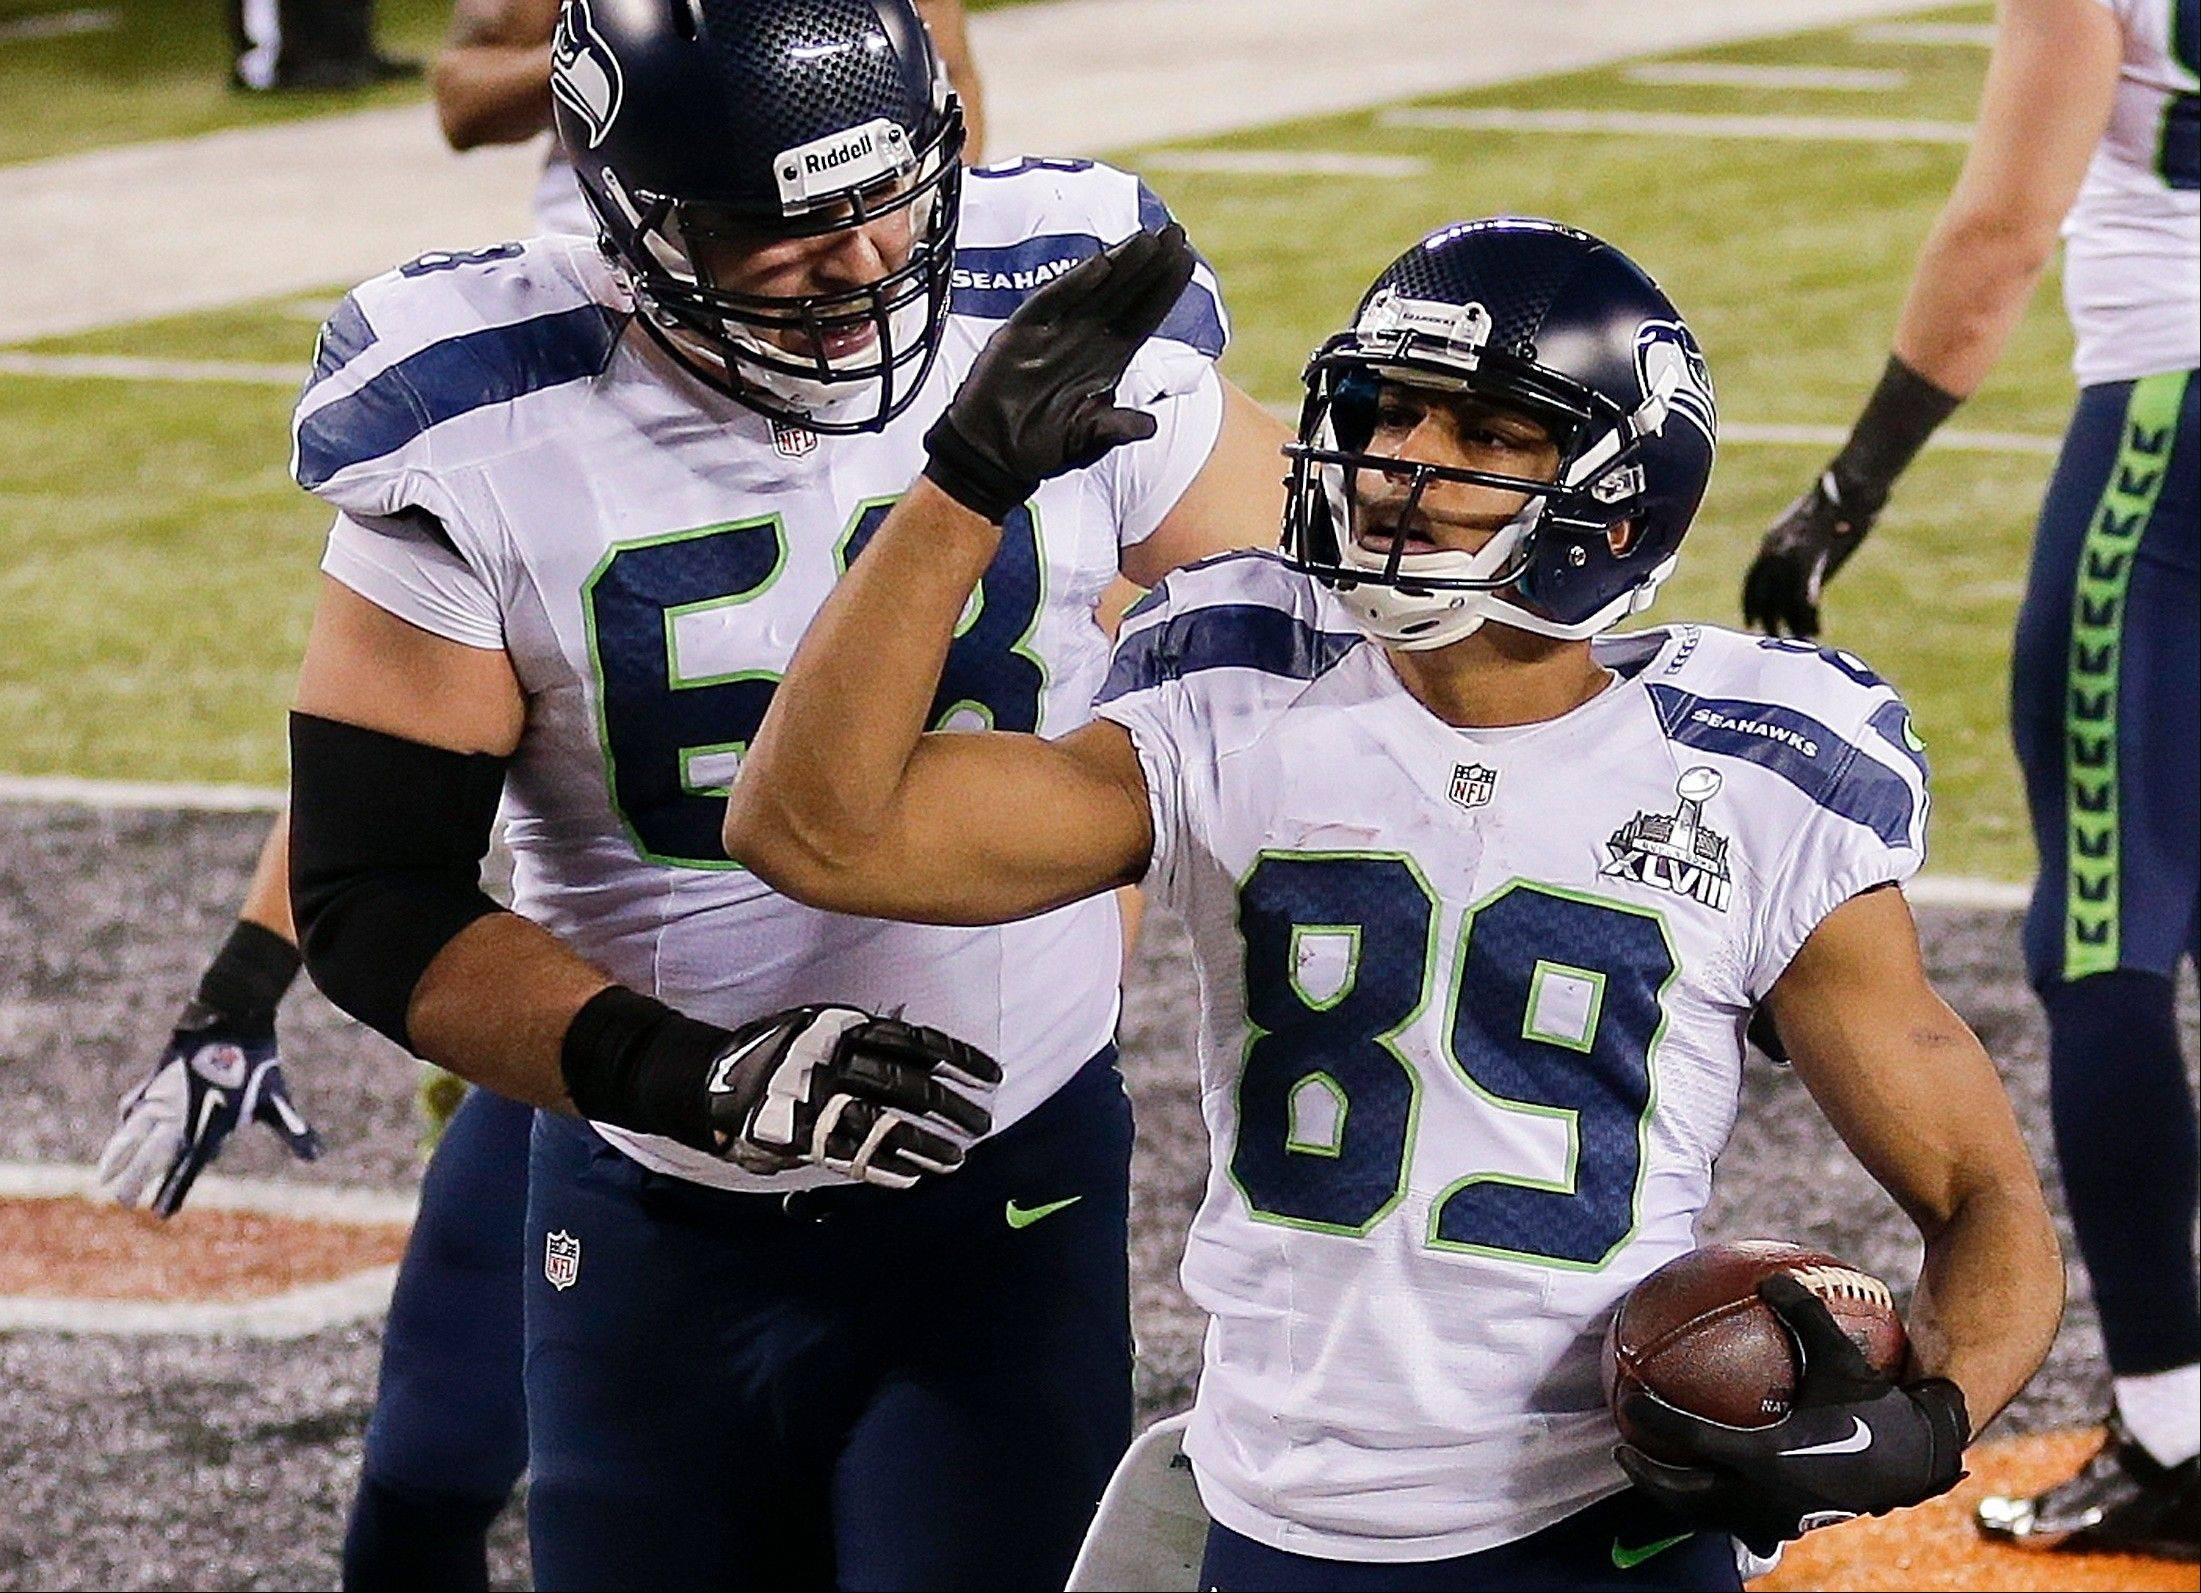 Seattle Seahawks wide receiver Doug Baldwin (89) celebrates with tackle Breno Giacomini (68) after scoring a touchdown against the Denver Broncos during the second half.